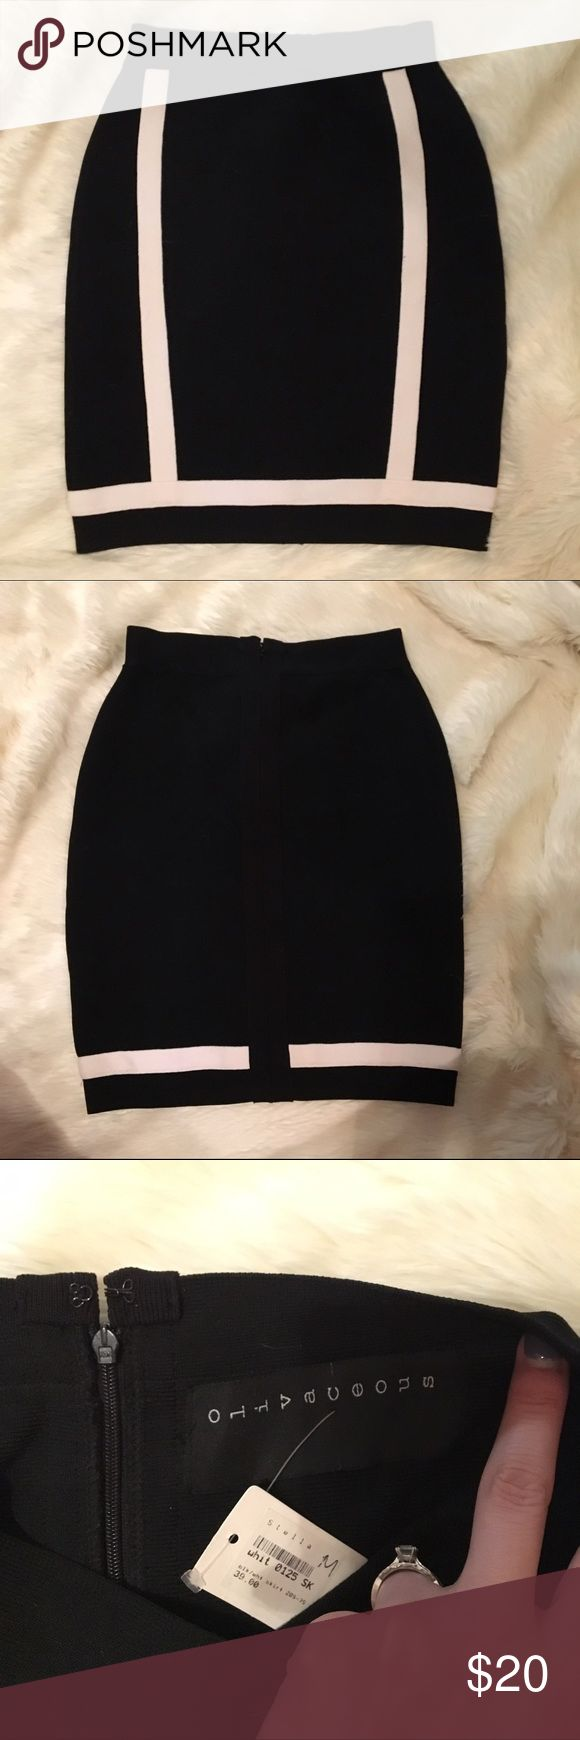 NWT black and ivory bandage skirt M New with tags black bandage skirt M. Very stretchy material. Black with ivory trim. Back zipper. From a local boutique olivaceous Skirts Mini